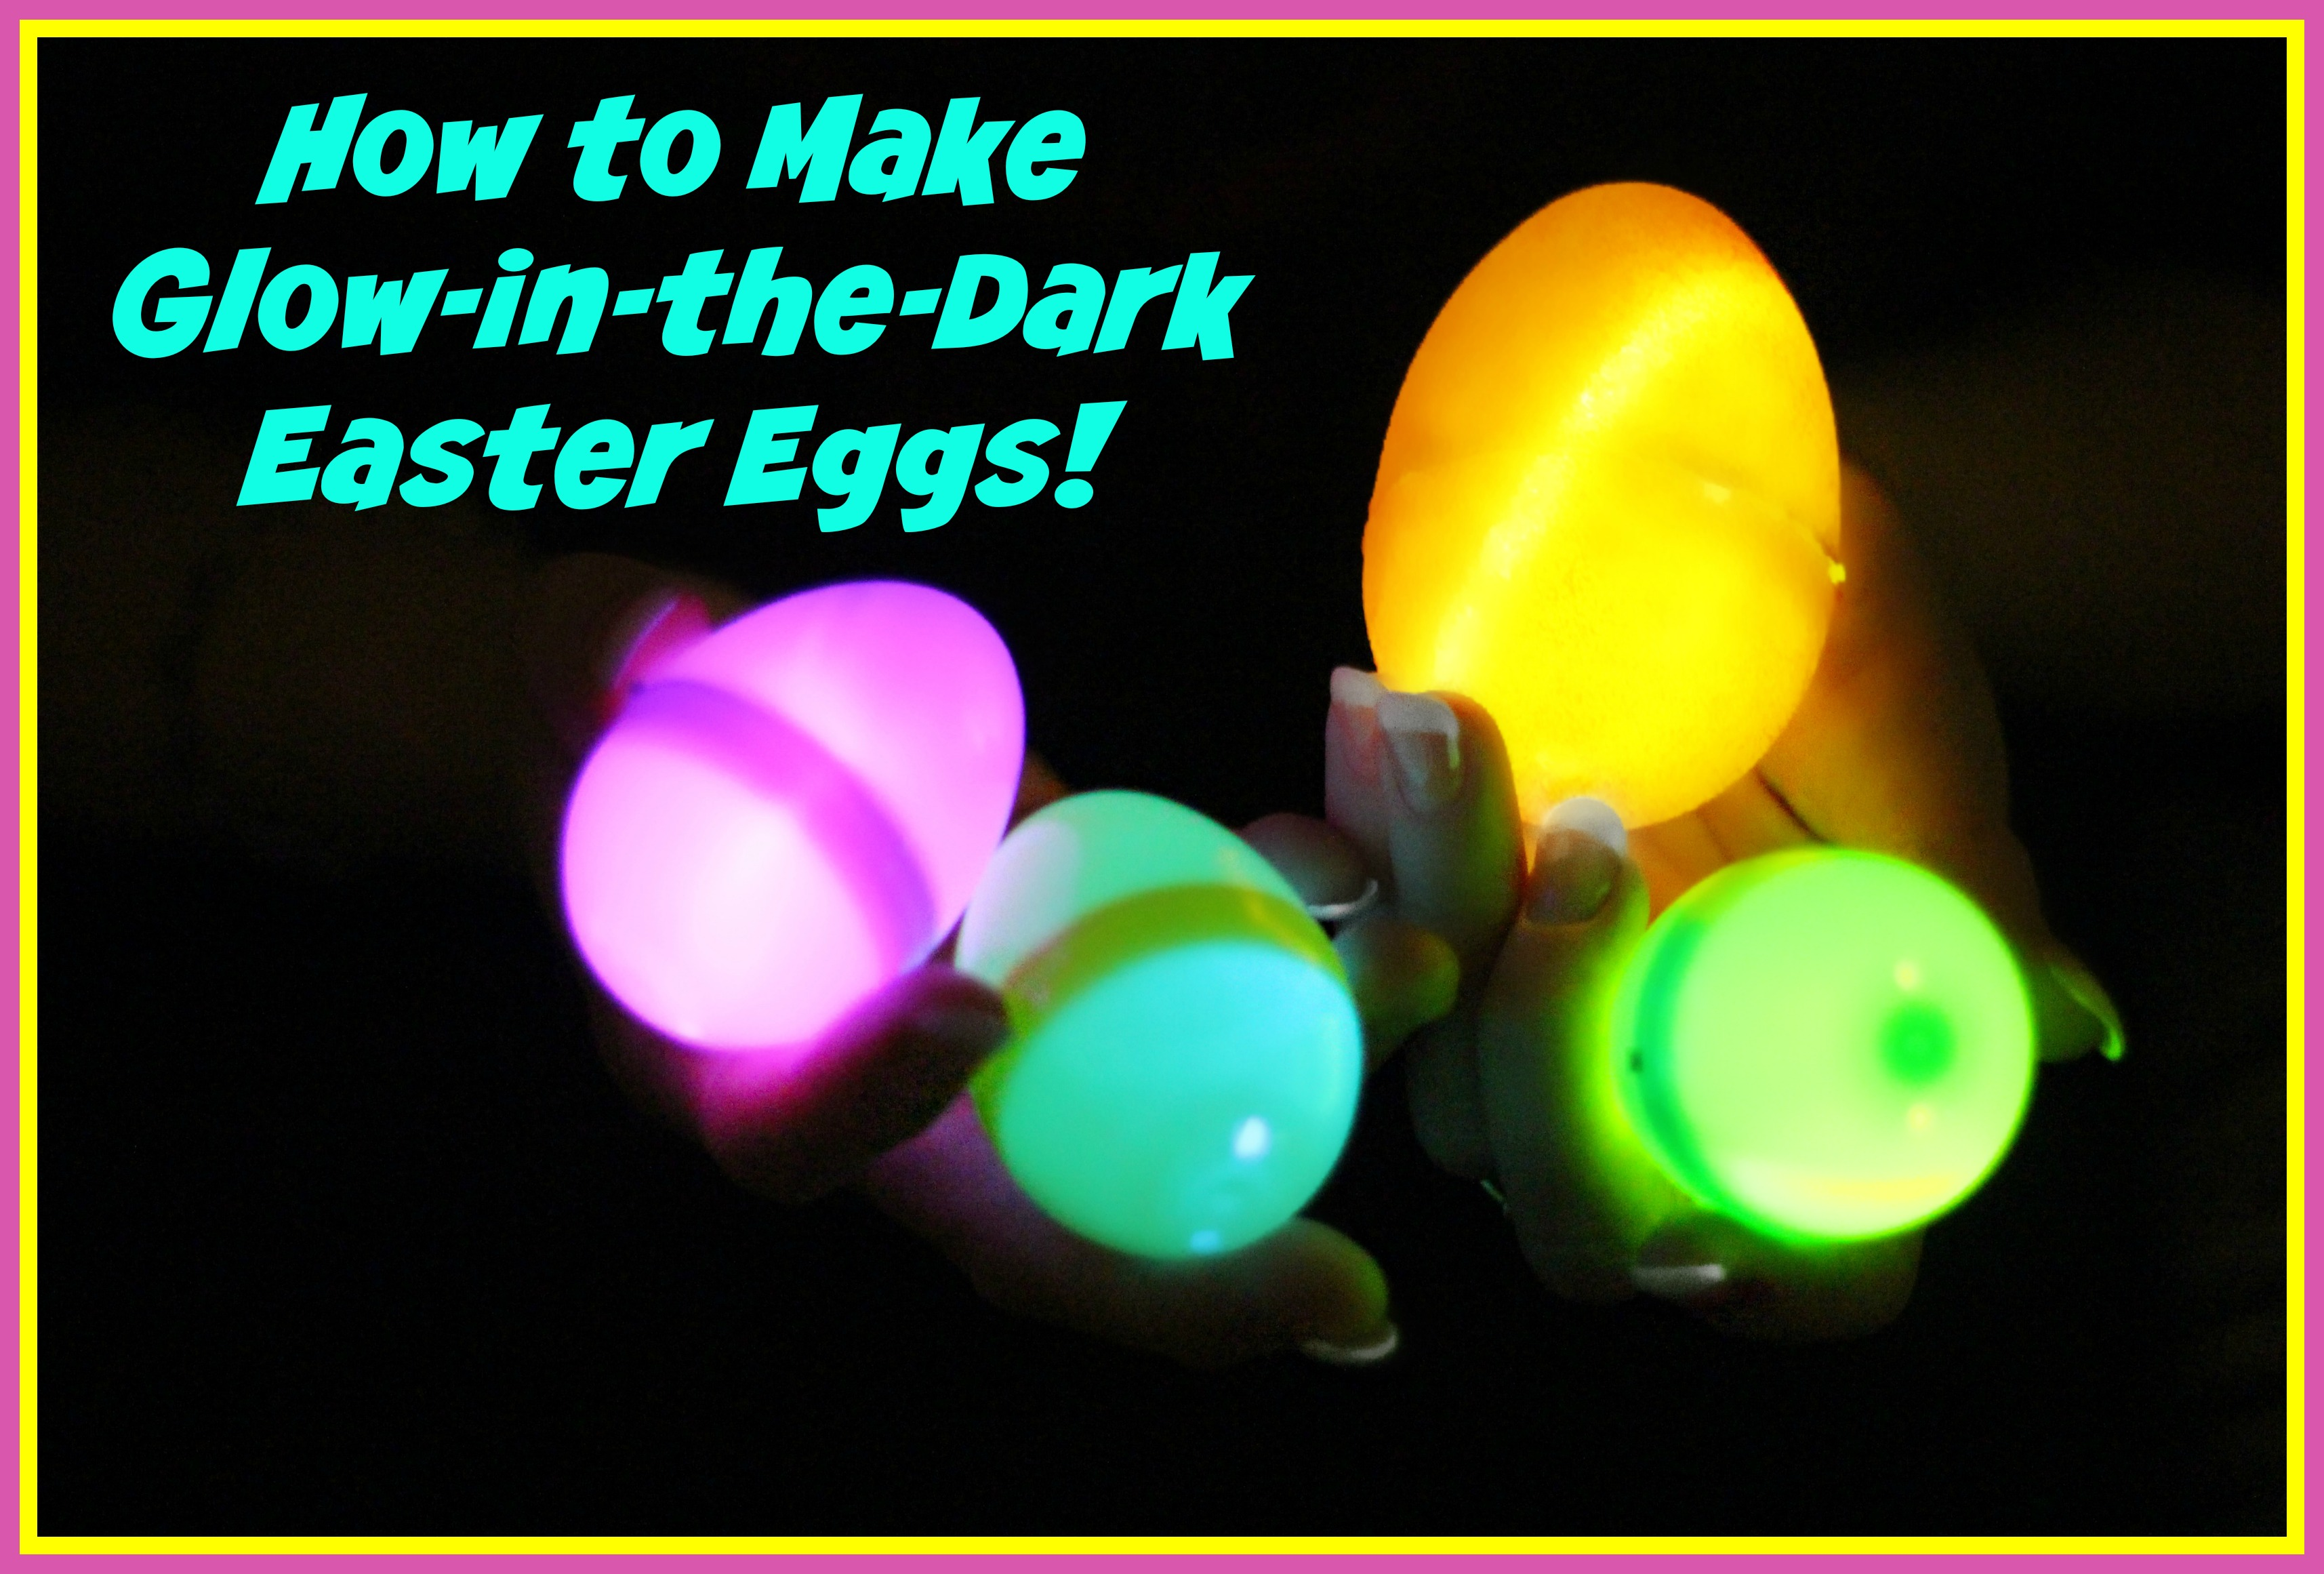 #Easter #DIY #crafts #EasterEggs #OurBigFamily